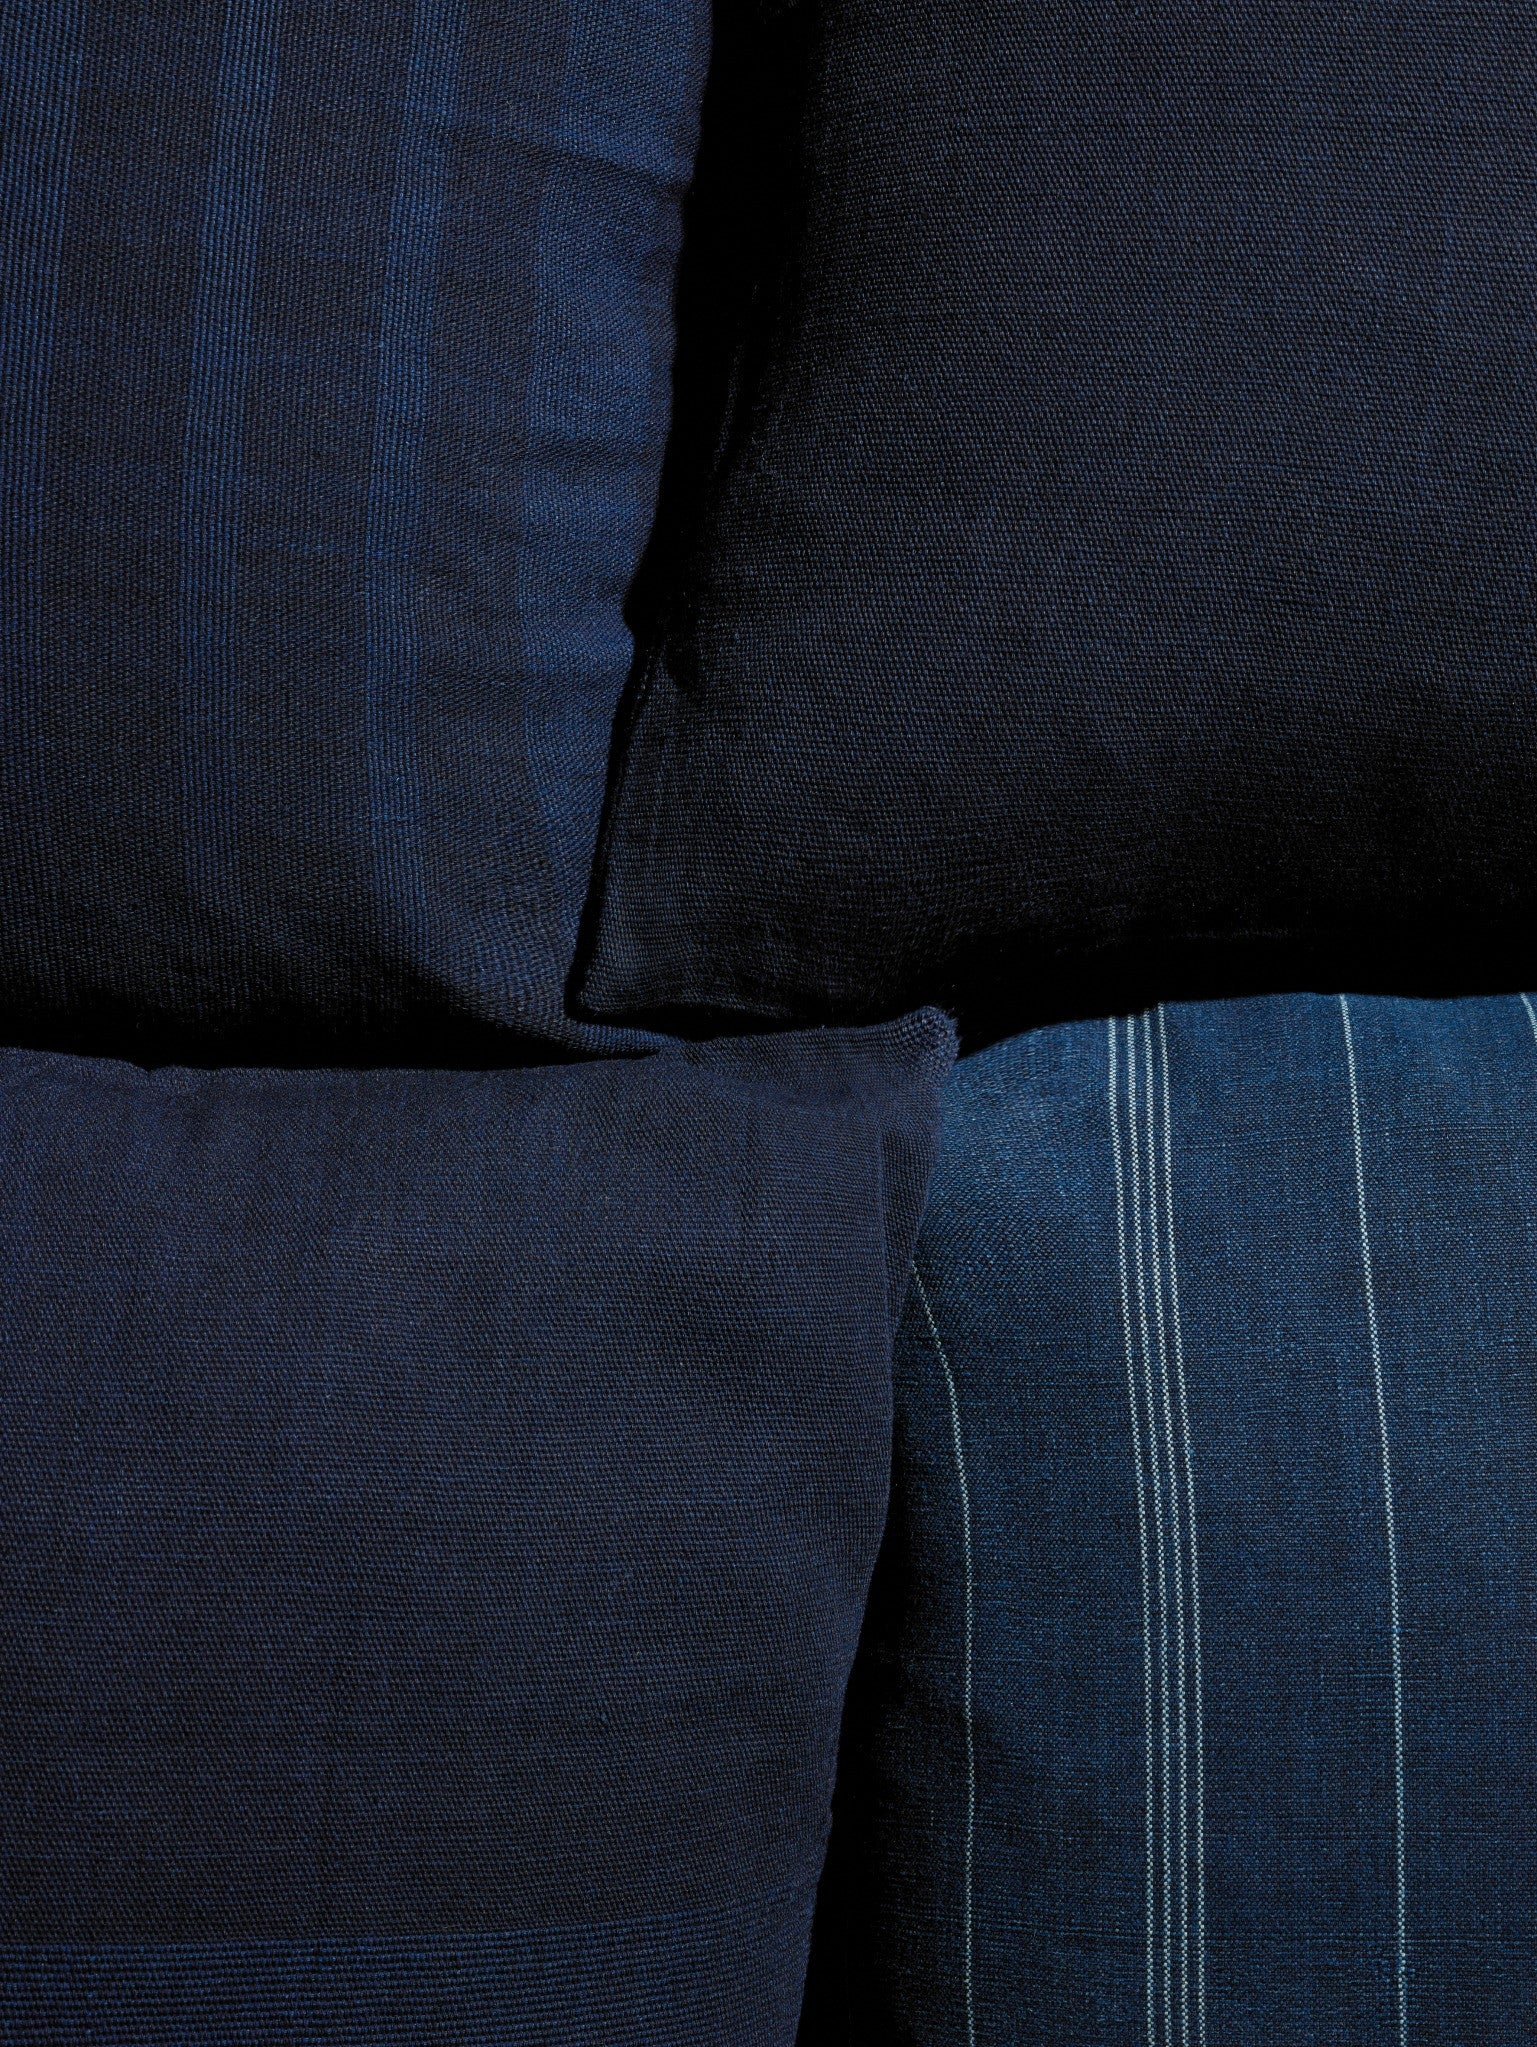 Set of 4 Indigo Pillows - YUYU Sustainable Home Goods